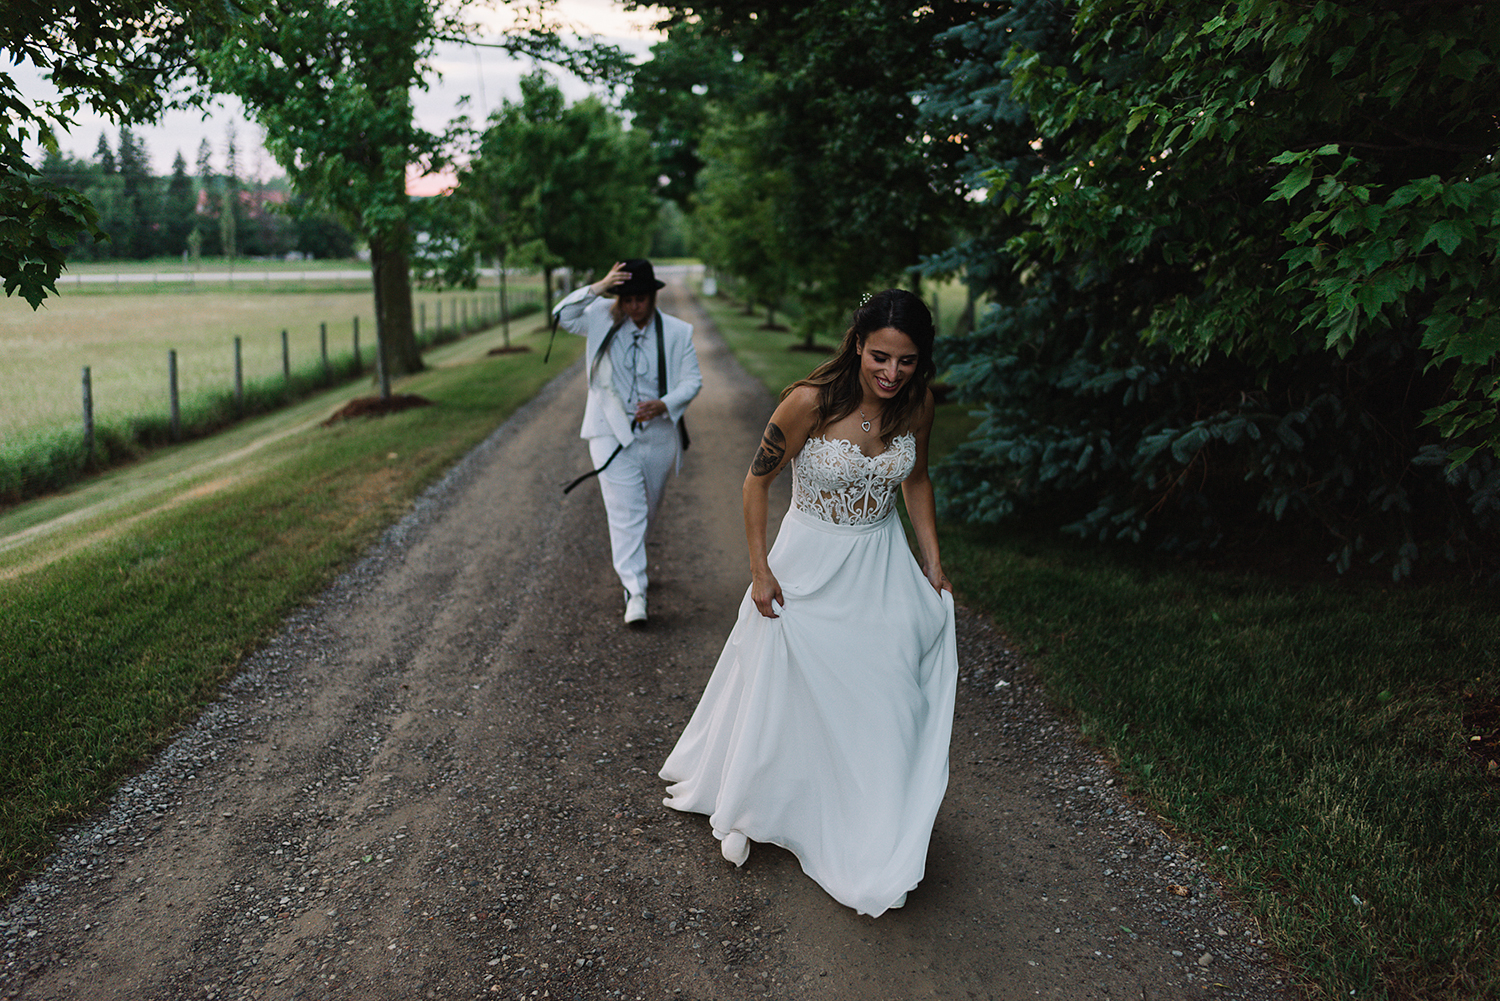 cambium-farms-wedding-ryanne-hollies-photography-gay-wedding-lgbtq-trendy-cool-badass-junebug-weddings-inspiration-wedding-reception-in-a-barn-portraits-at-sunset-bride-and-bride-fence-romantic-moody-sunset-golden-hour-walking.jpg